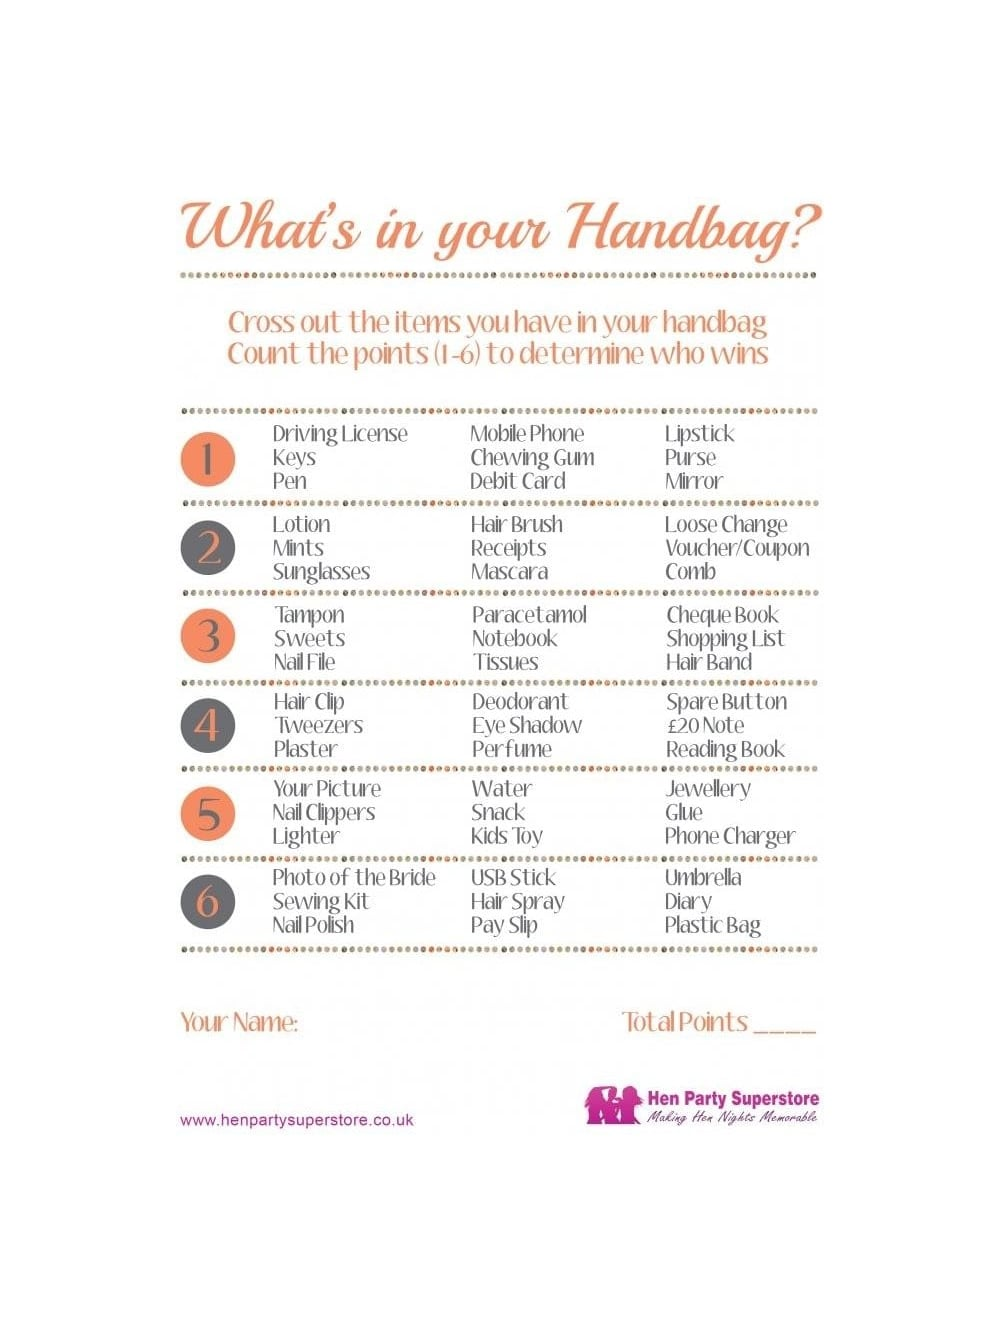 What\'s In Your Handbag Free Hen Party Game | Hen Party Superstore